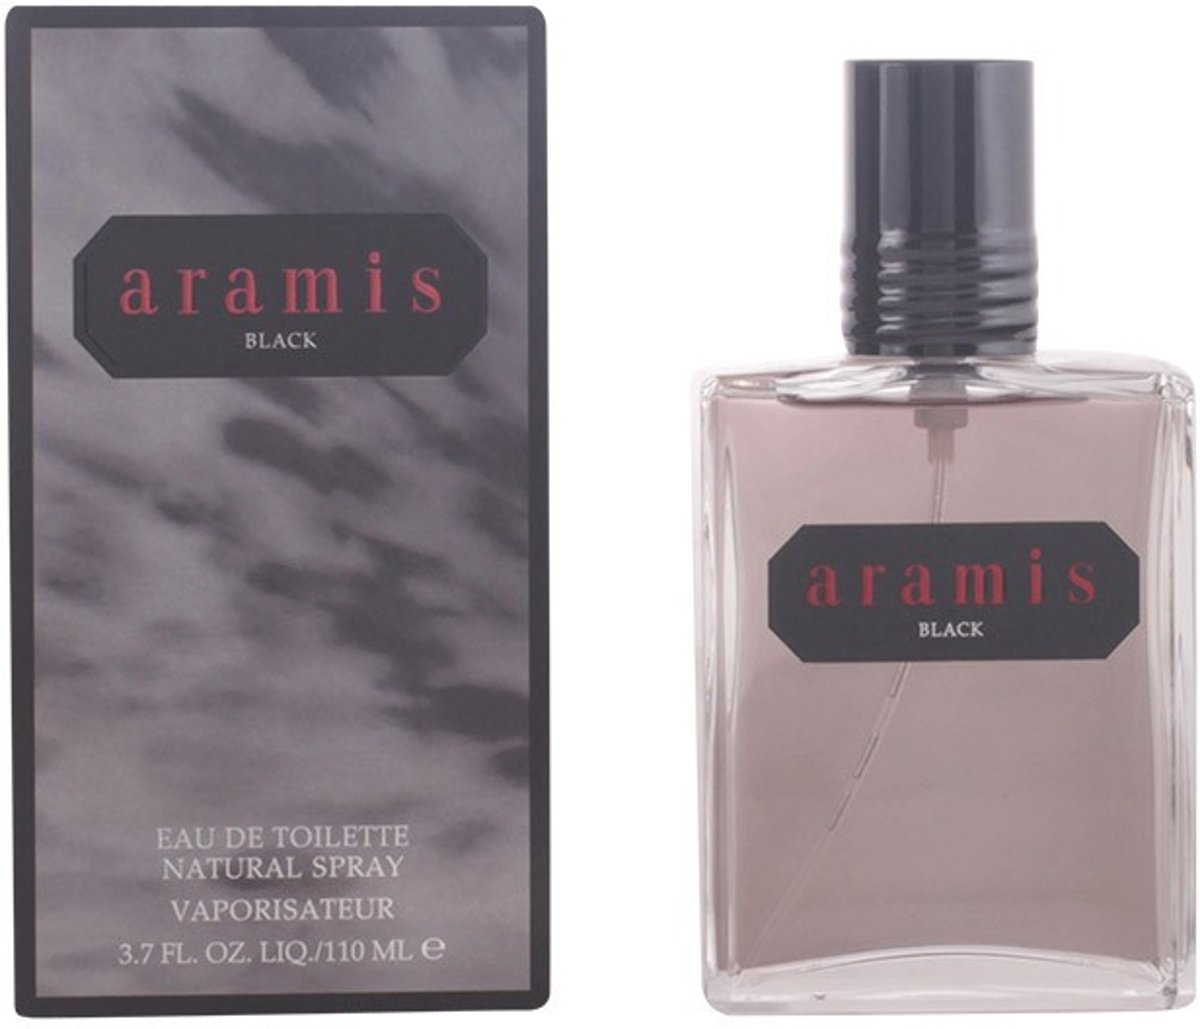 MULTI BUNDEL 2 stuks ARAMIS BLACK Eau de Toilette Spray 100 ml